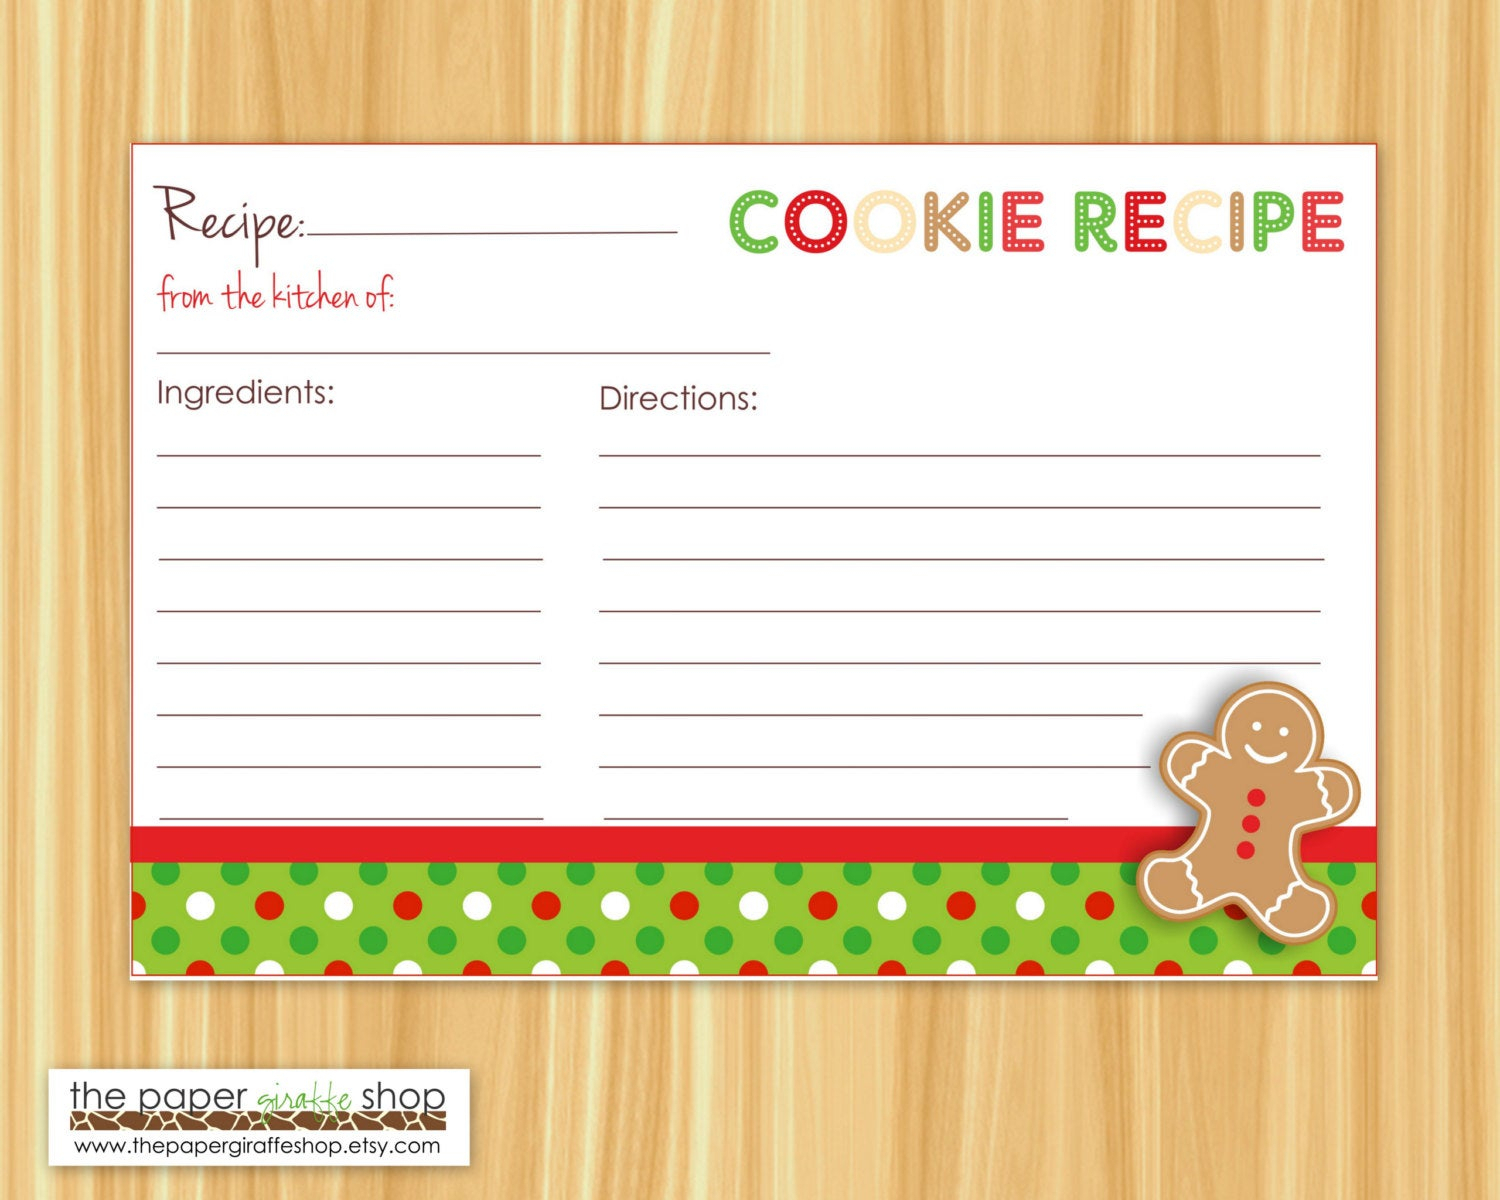 Cookie Exchange Recipe Card Template - Atlantaauctionco With Cookie Exchange Recipe Card Template